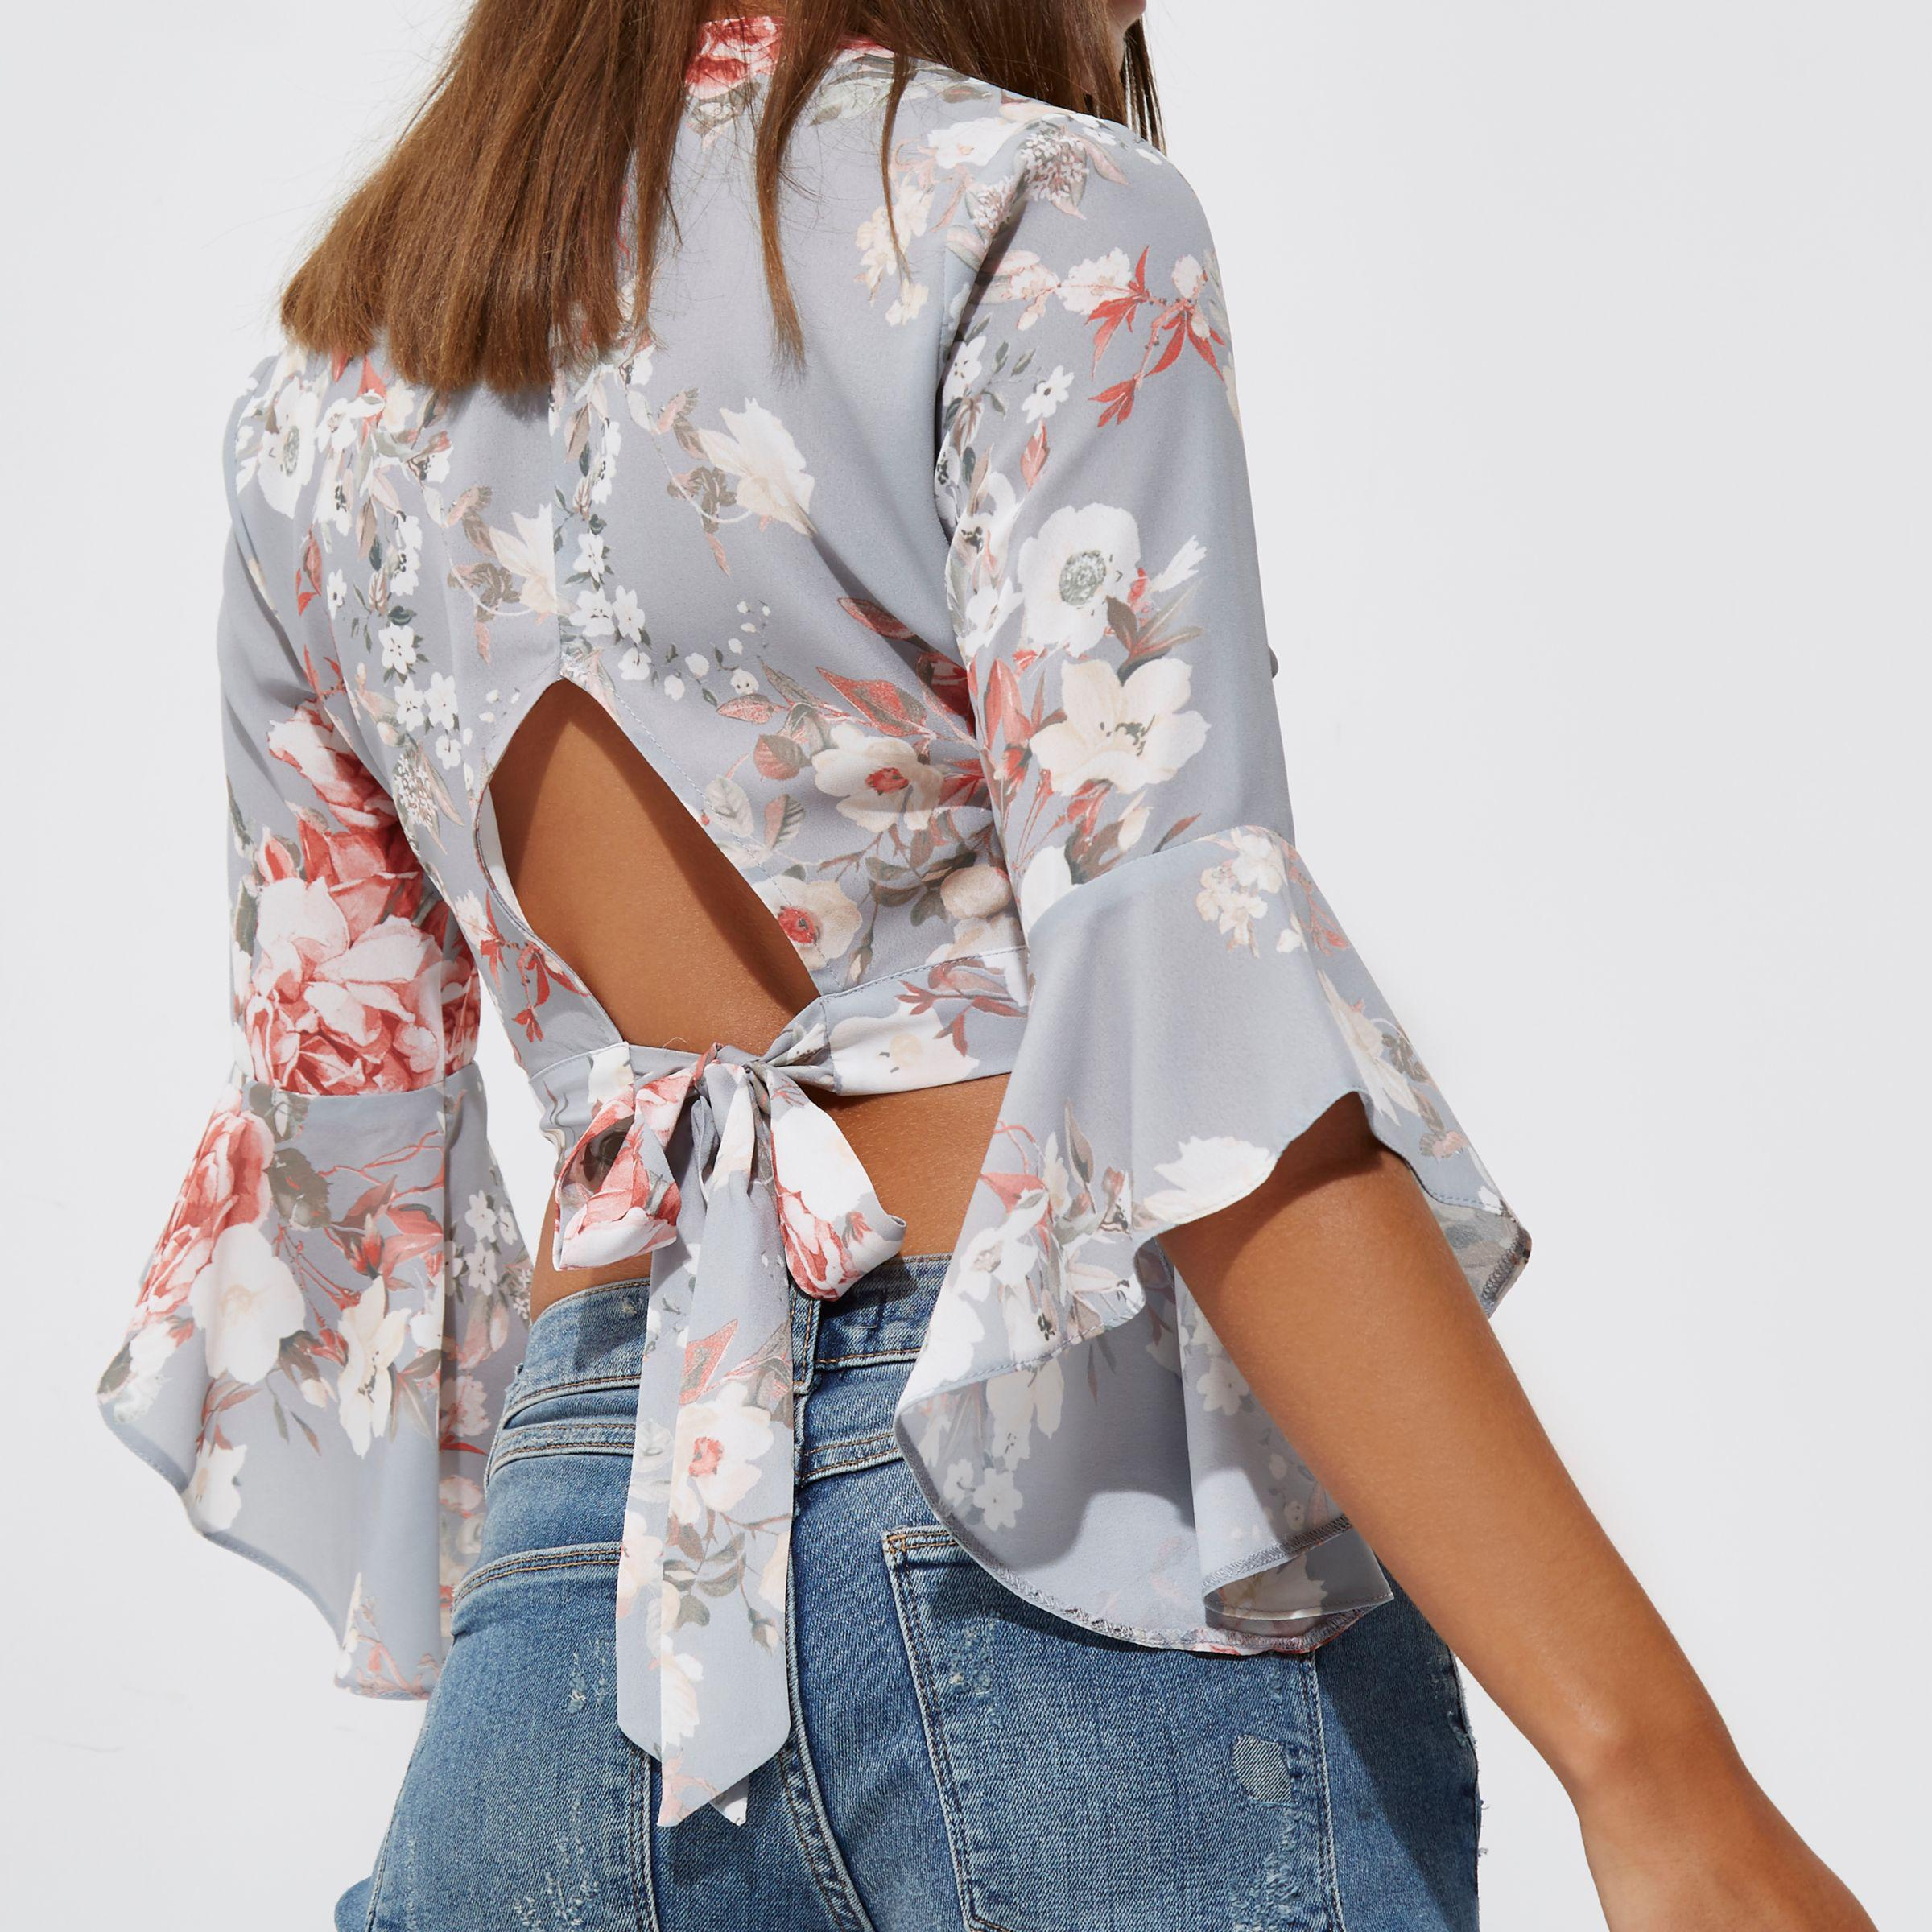 55300f86ad7e4a River Island Blue Floral Print Wrap Frill Sleeve Crop Top in Blue - Lyst